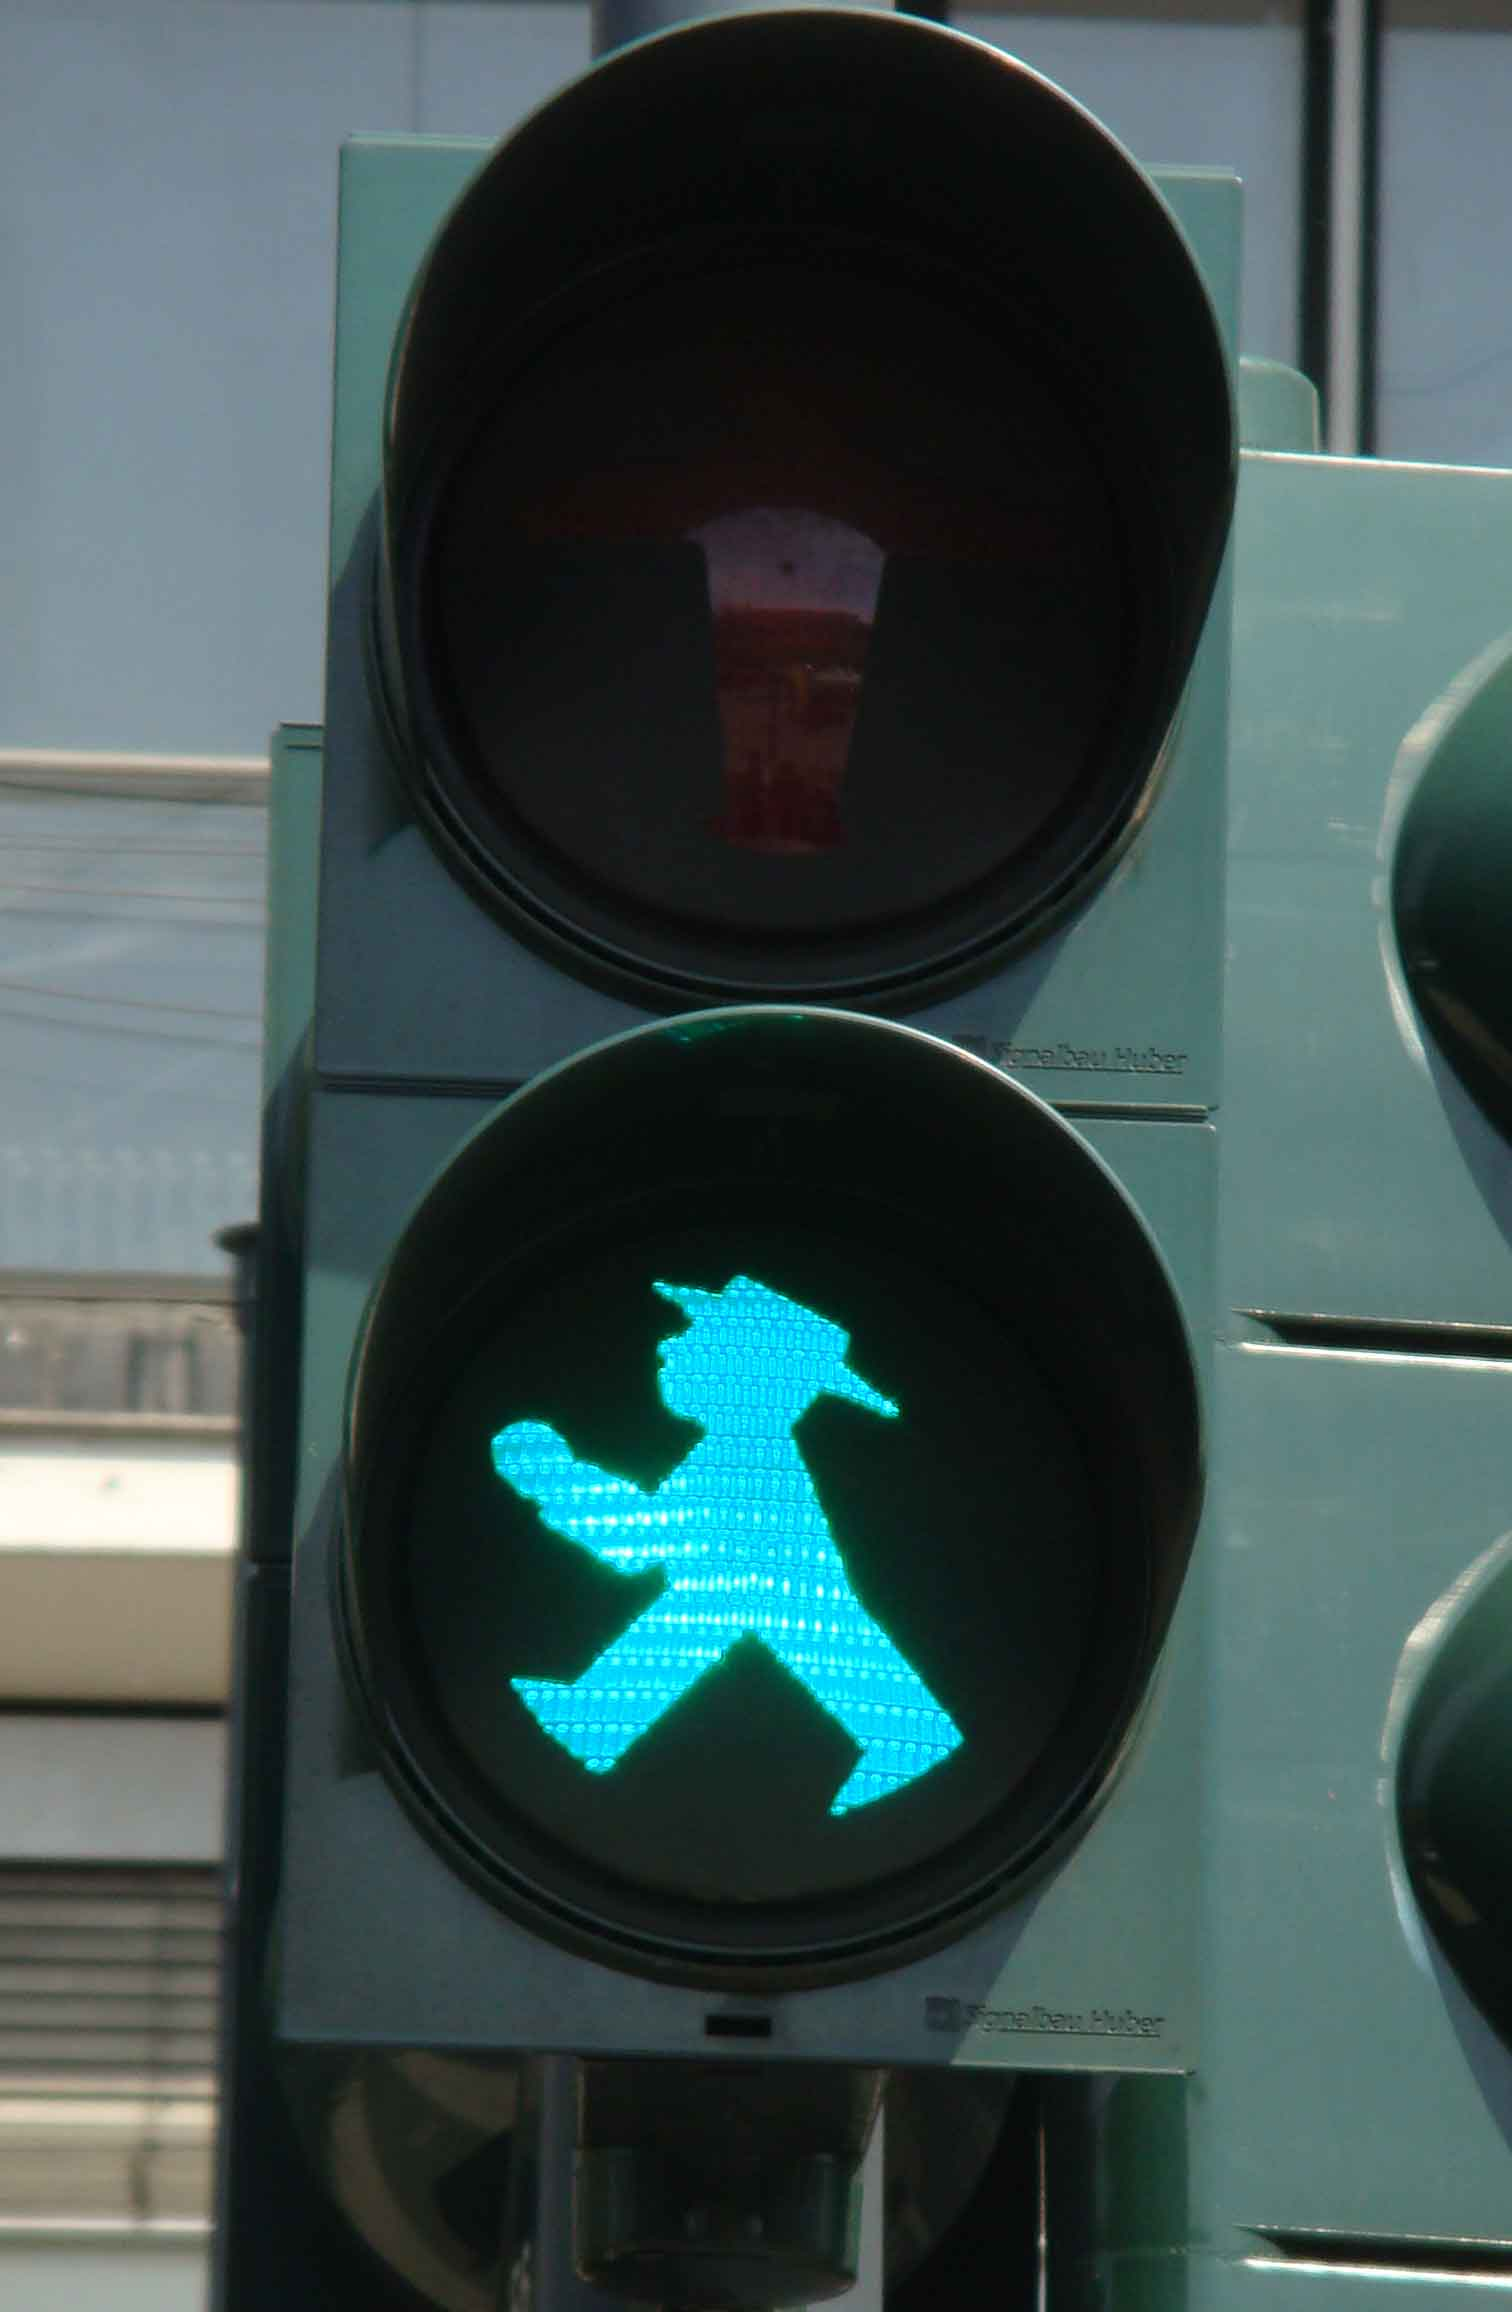 Berlin crossing sign